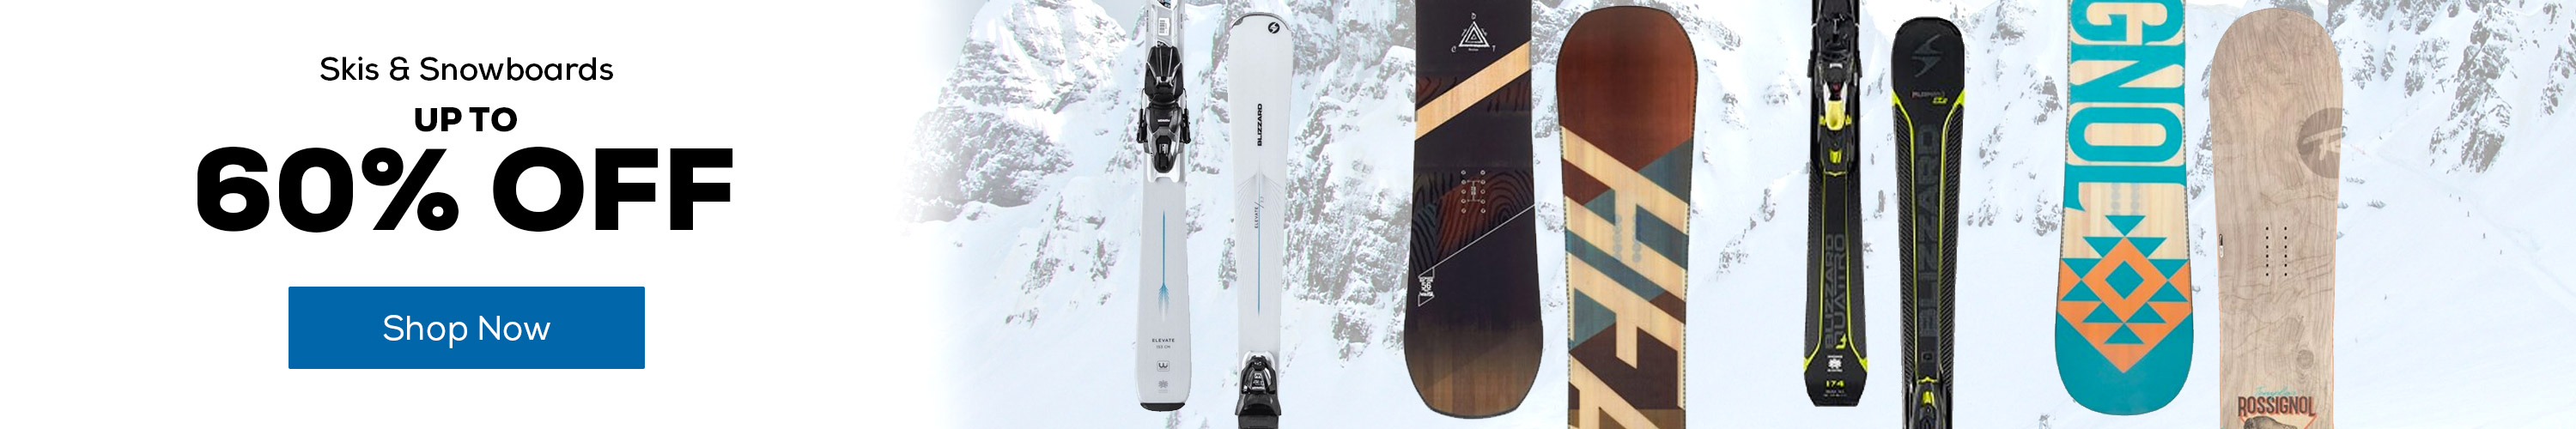 Up to 60% off Skis & Snowboards